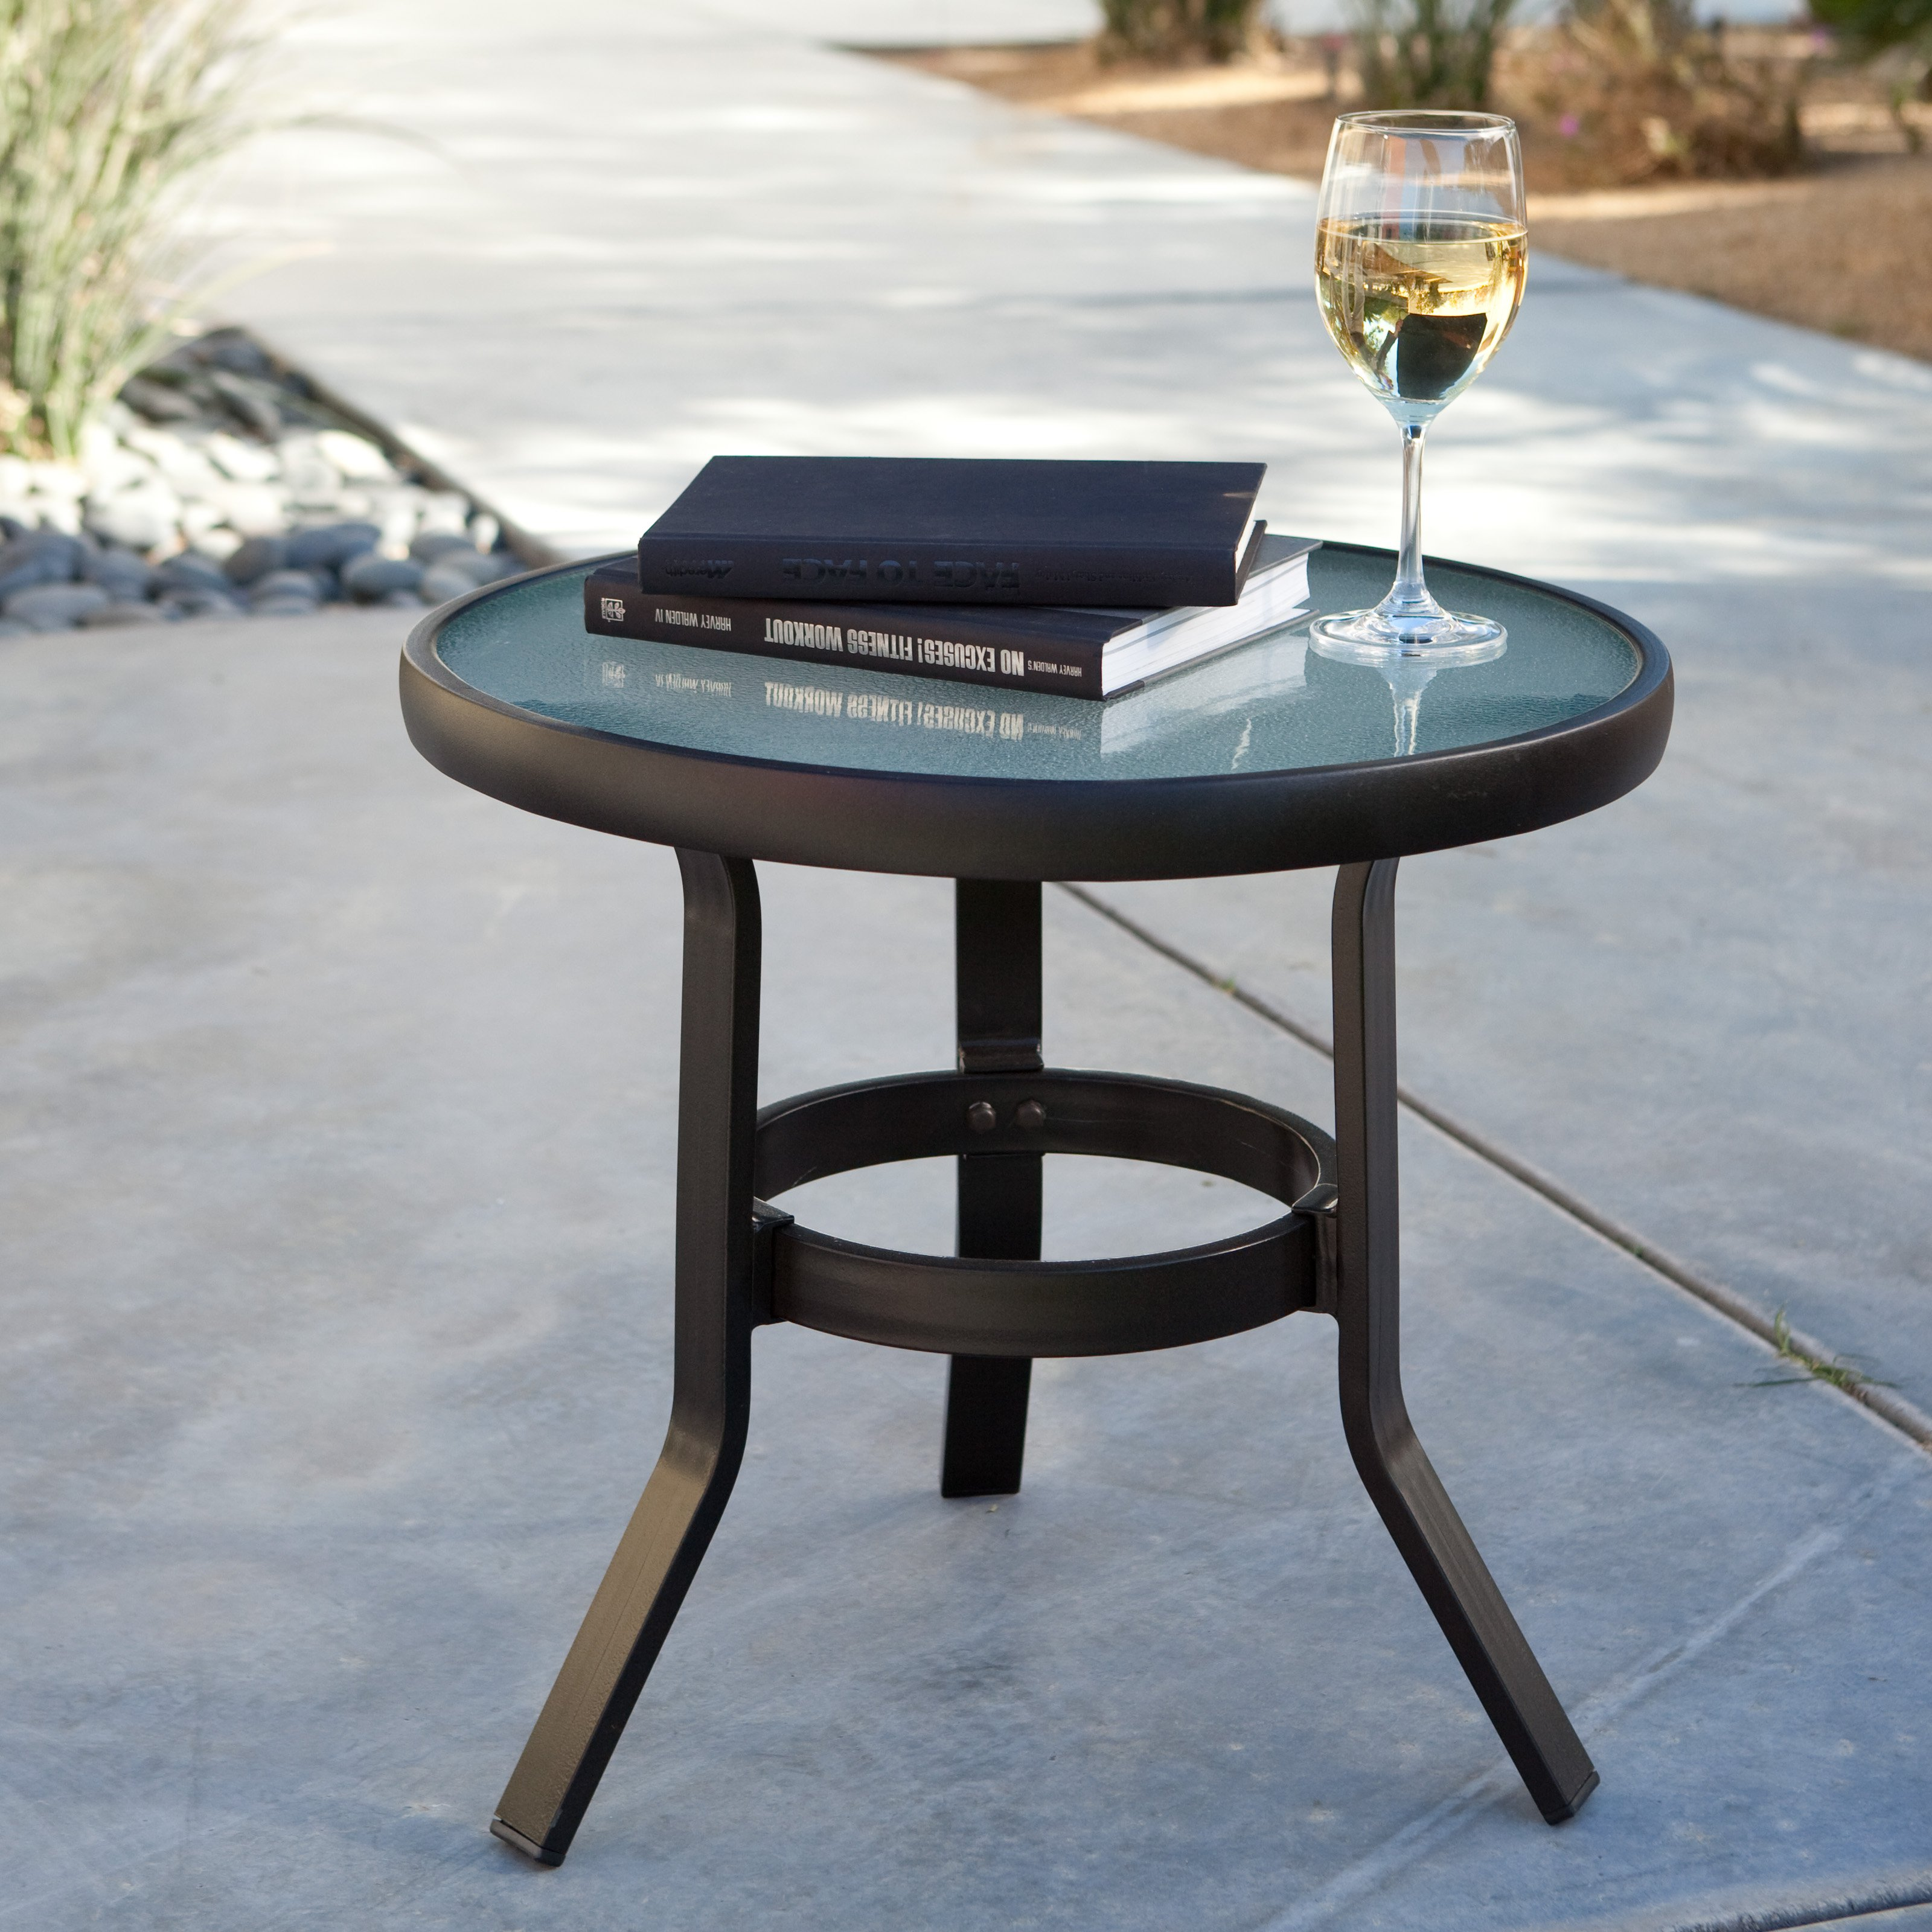 round patio side table outdoor front porch deck pool glass top end metal accent details malm nightstand sofa legs white garden furniture sets small mirrored green tiffany lamp